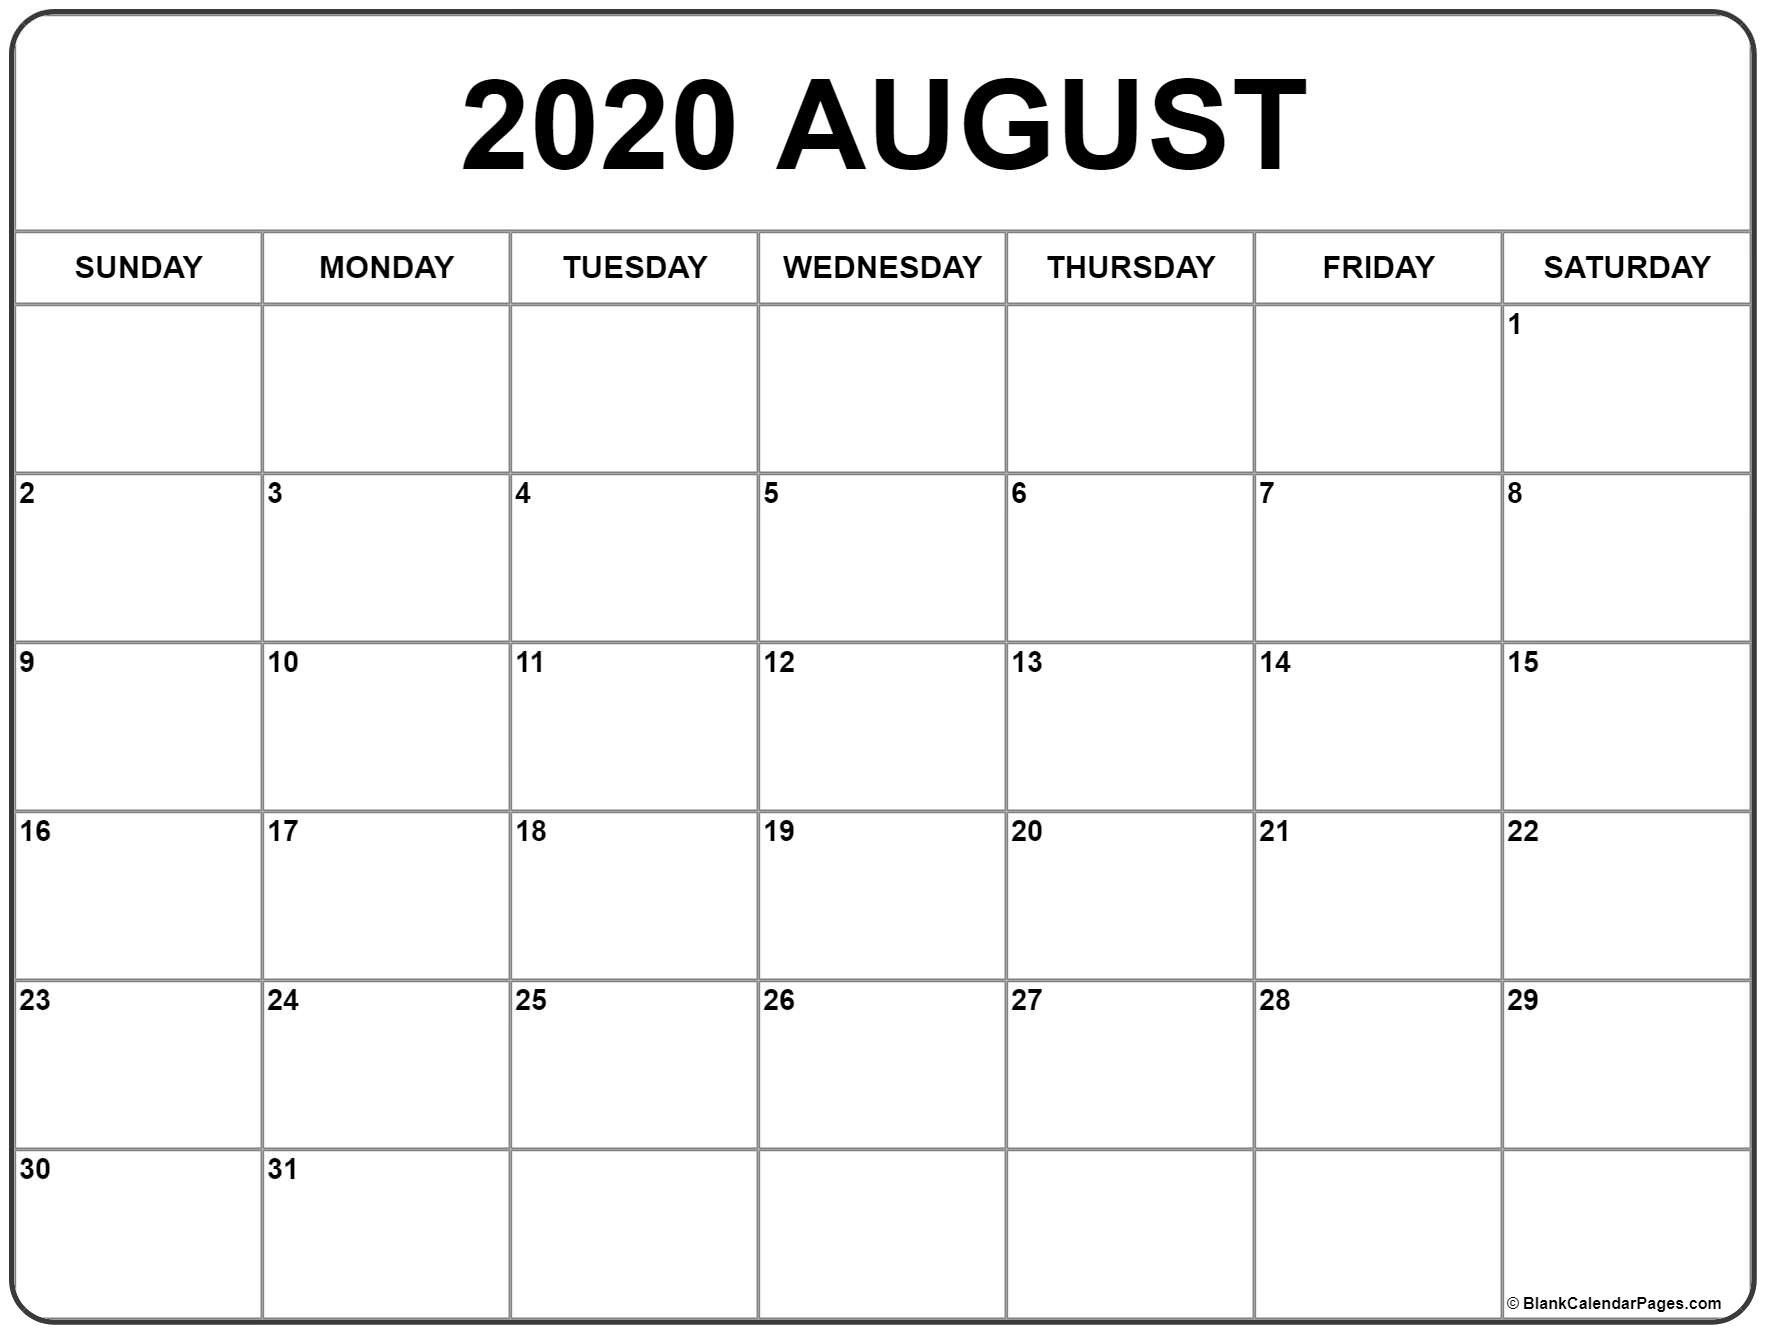 August 2020 Calendar | Free Printable Monthly Calendars-Printable Blank Monthly Calendar 2020 August